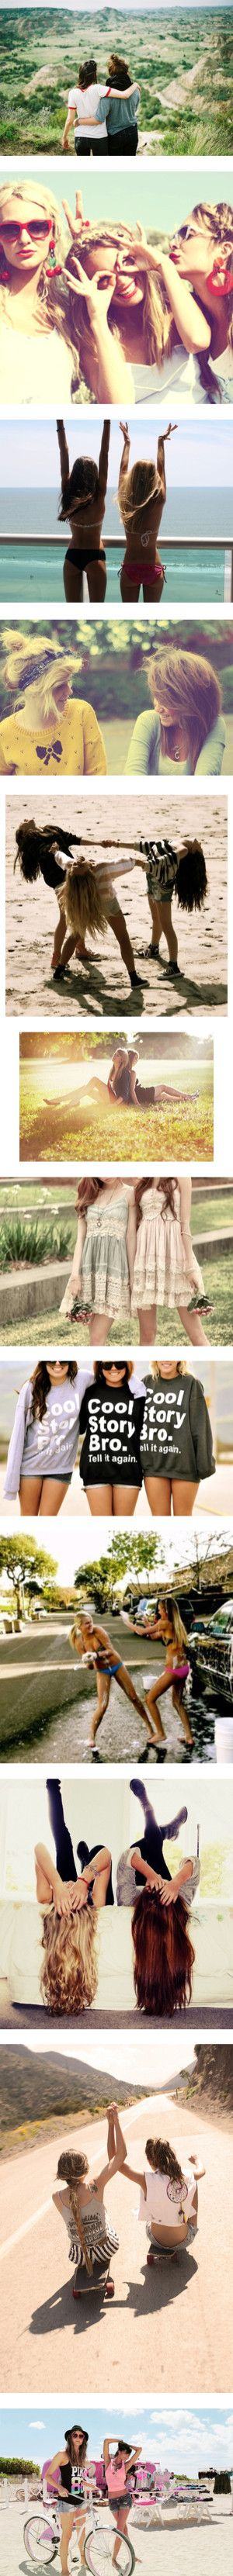 """Tan skin; crazy days; late nights: Summer 2012"" by lovelylifedarling ❤ liked on Polyvore"